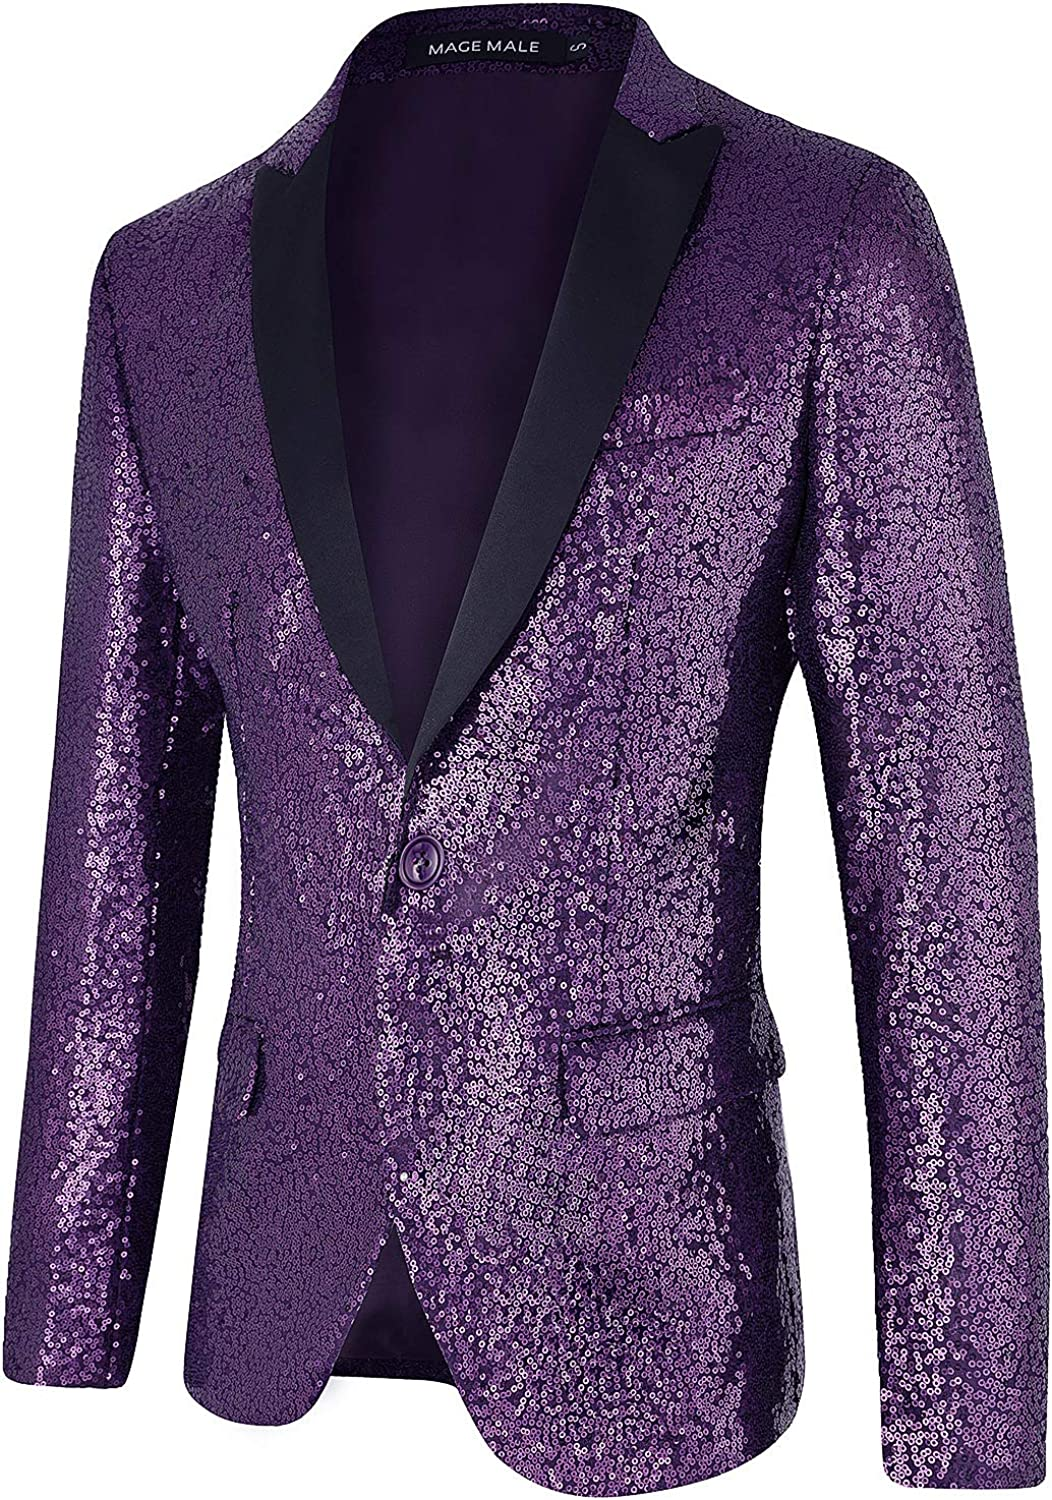 MAGE MALE Men's Shiny Sequins Suit Jacket Blazer One Button Tuxedo for Party,Wedding,Banquet,Prom